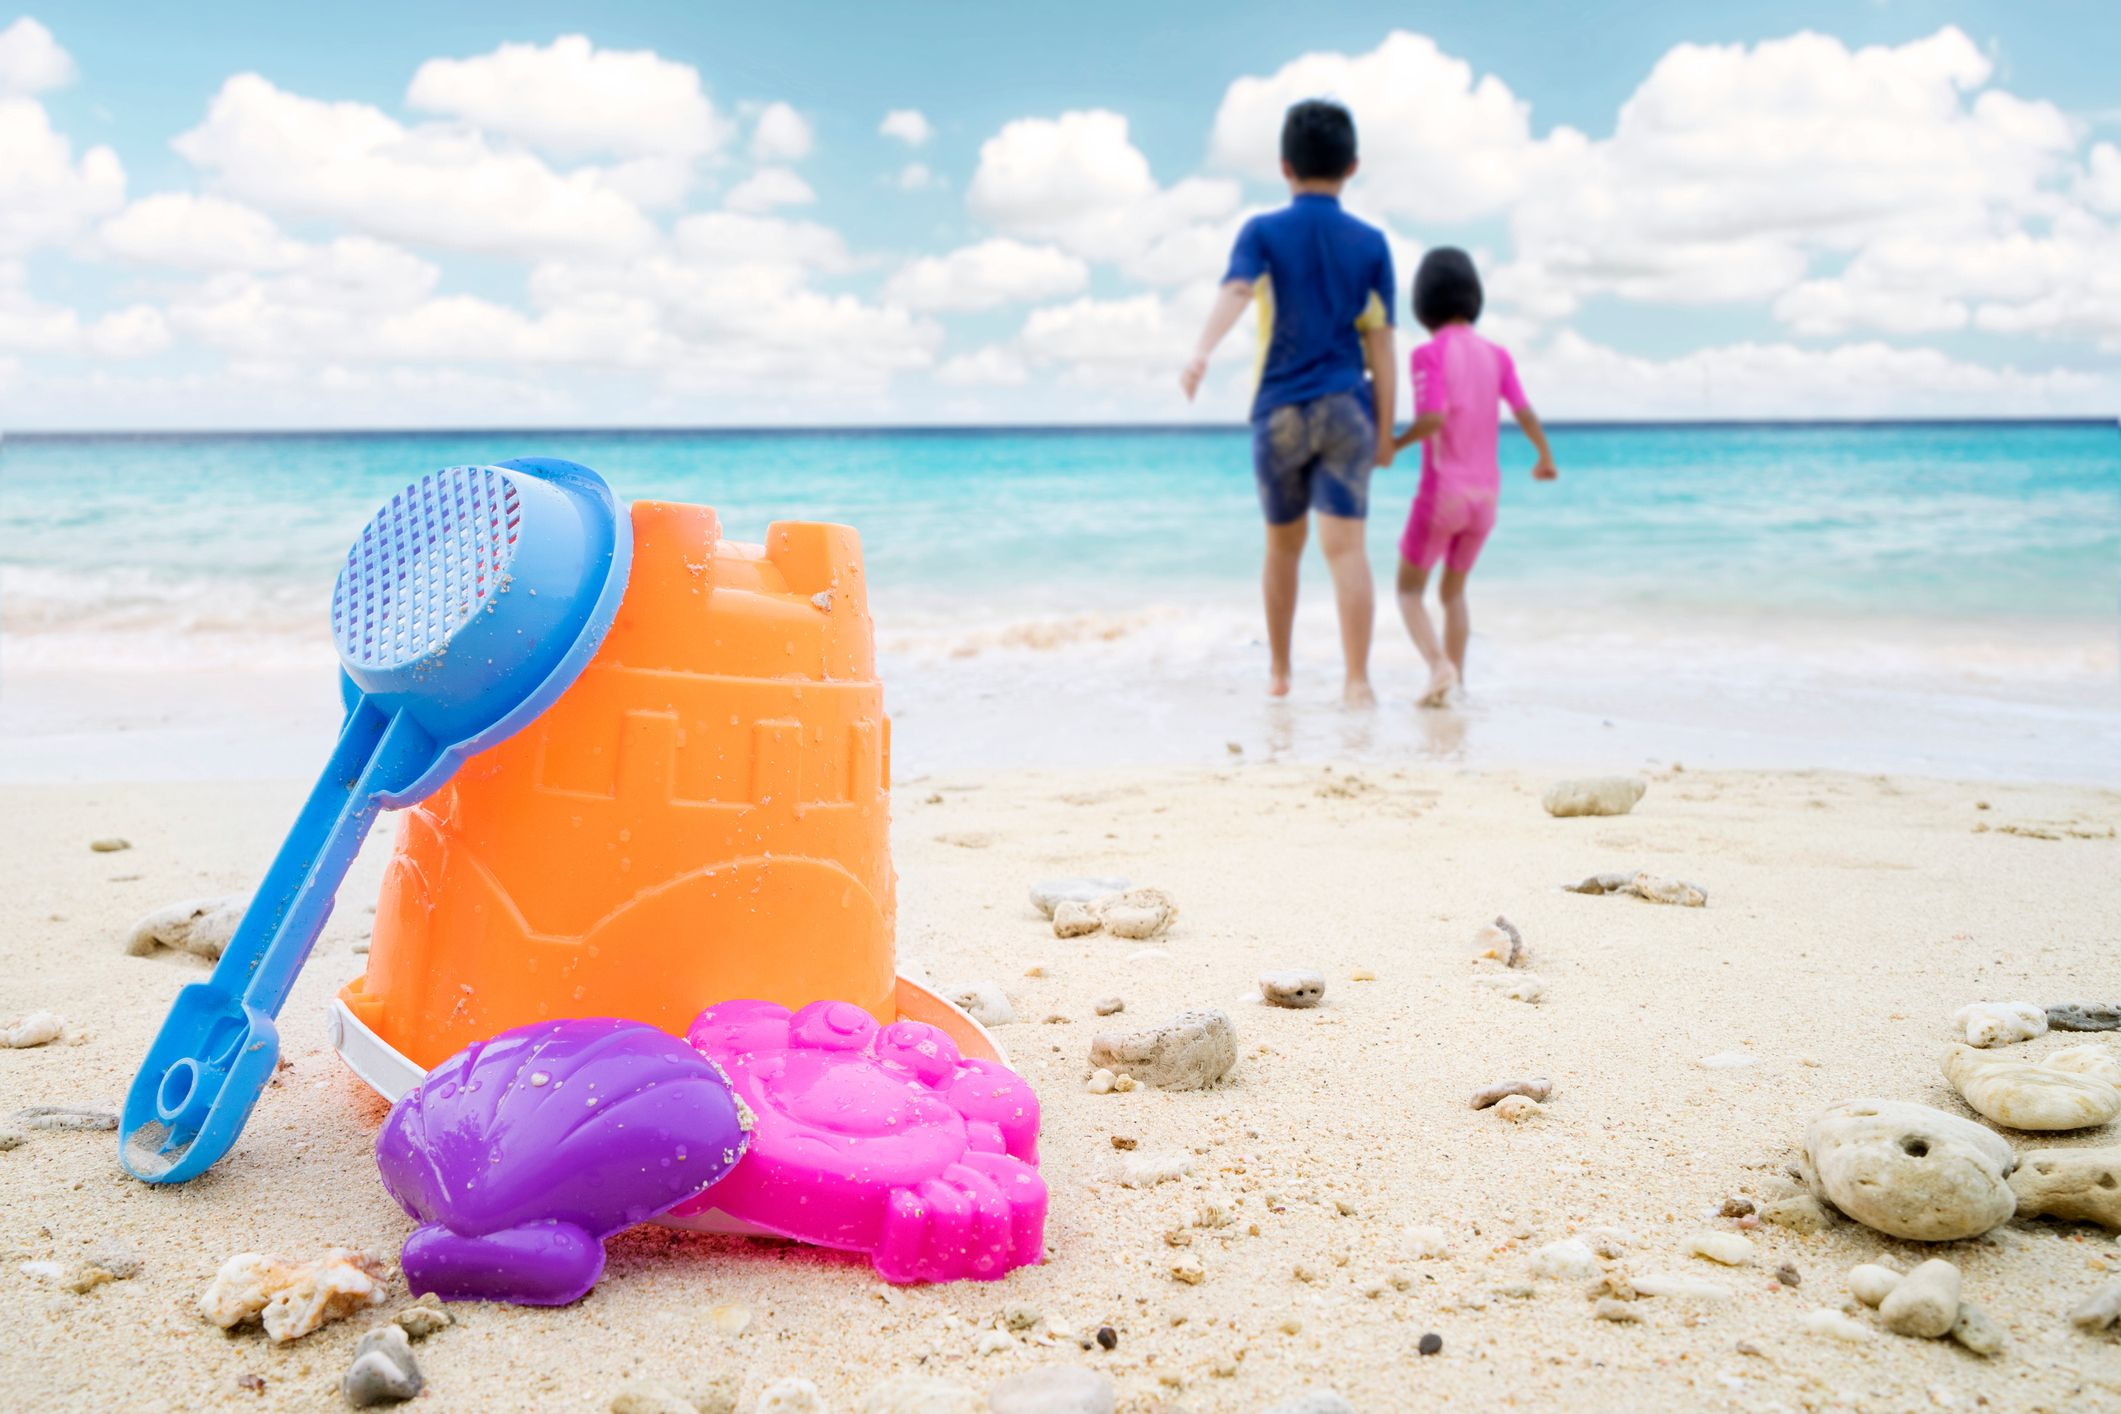 f216afeda6 The 8 Best Beach Toys of 2019